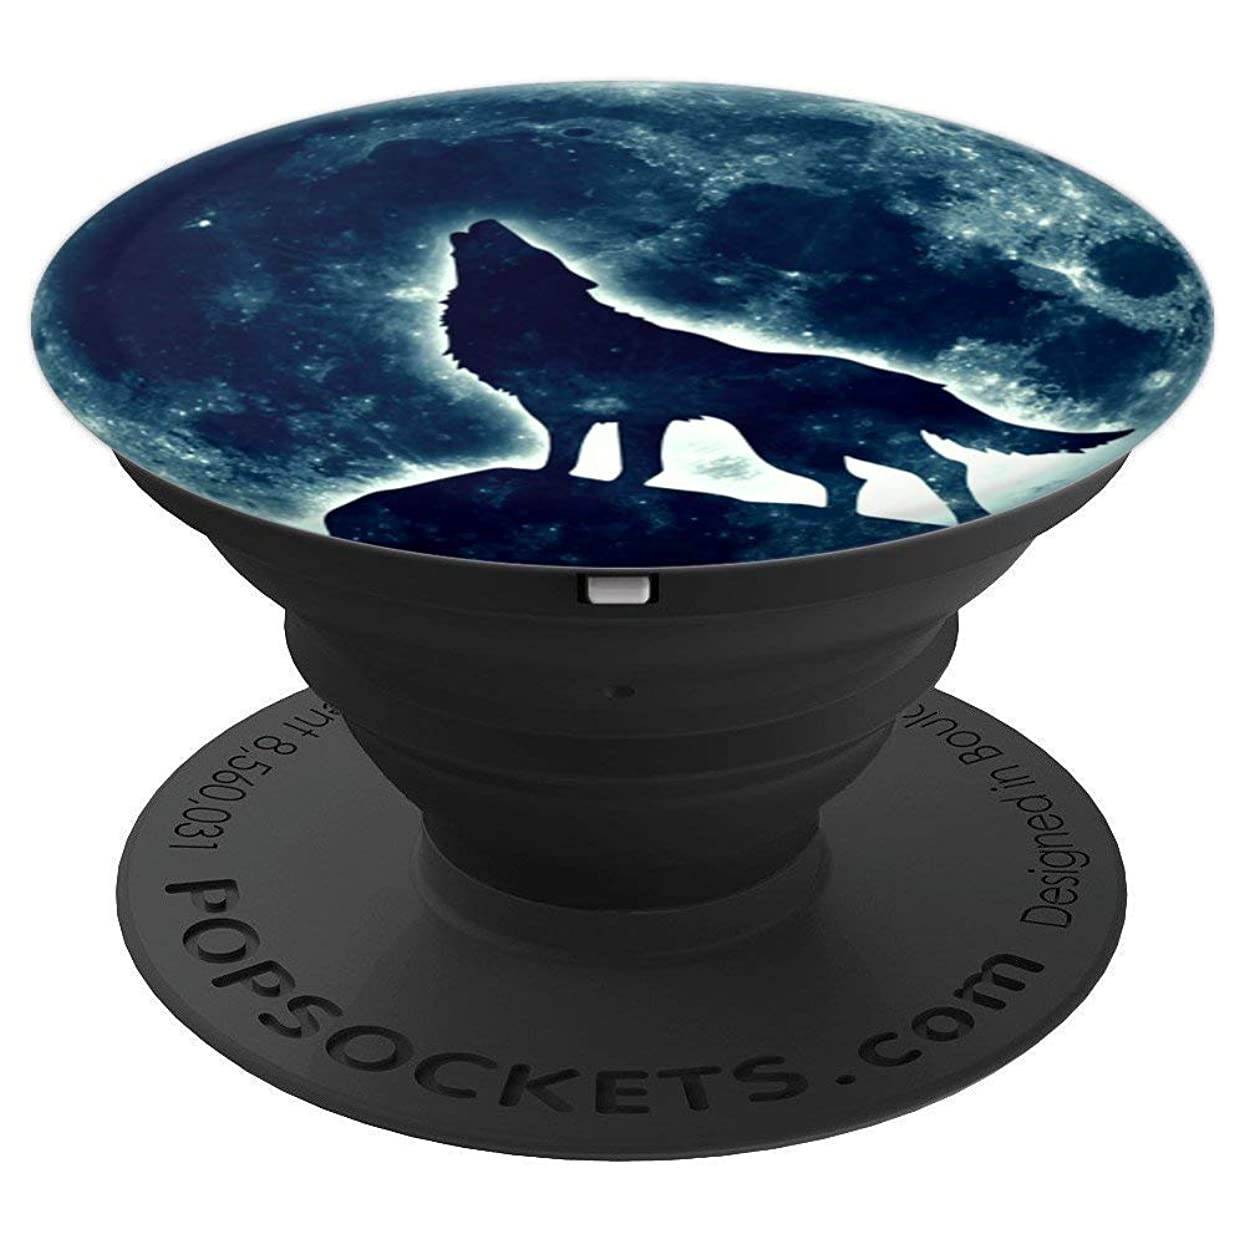 Howling Wolf Magic Full Moon Moonphase Galaxy Space Design - PopSockets Grip and Stand for Phones and Tablets s15939998179178